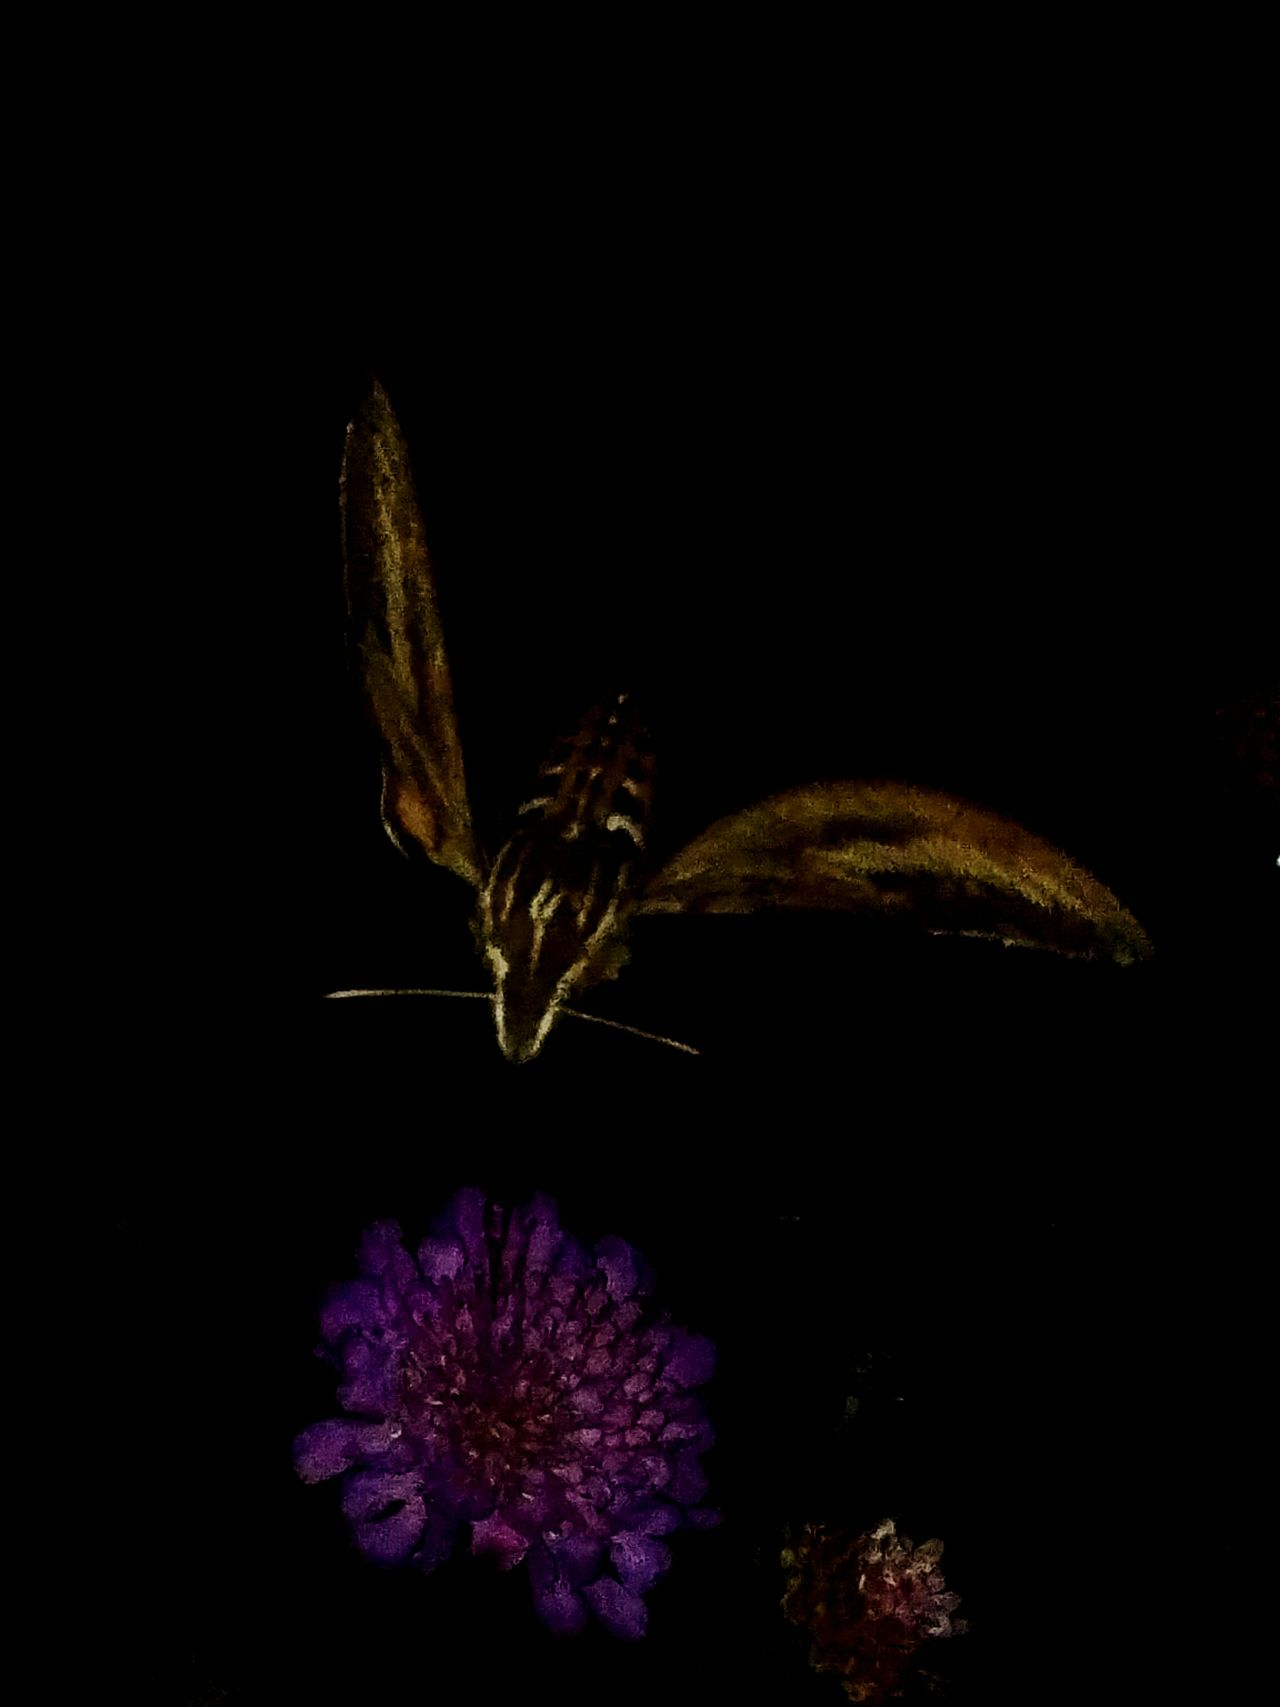 Nighttime Moth Shutter Speed Luckyshot Insect Outdoors Nature Flower Insects And Flowers